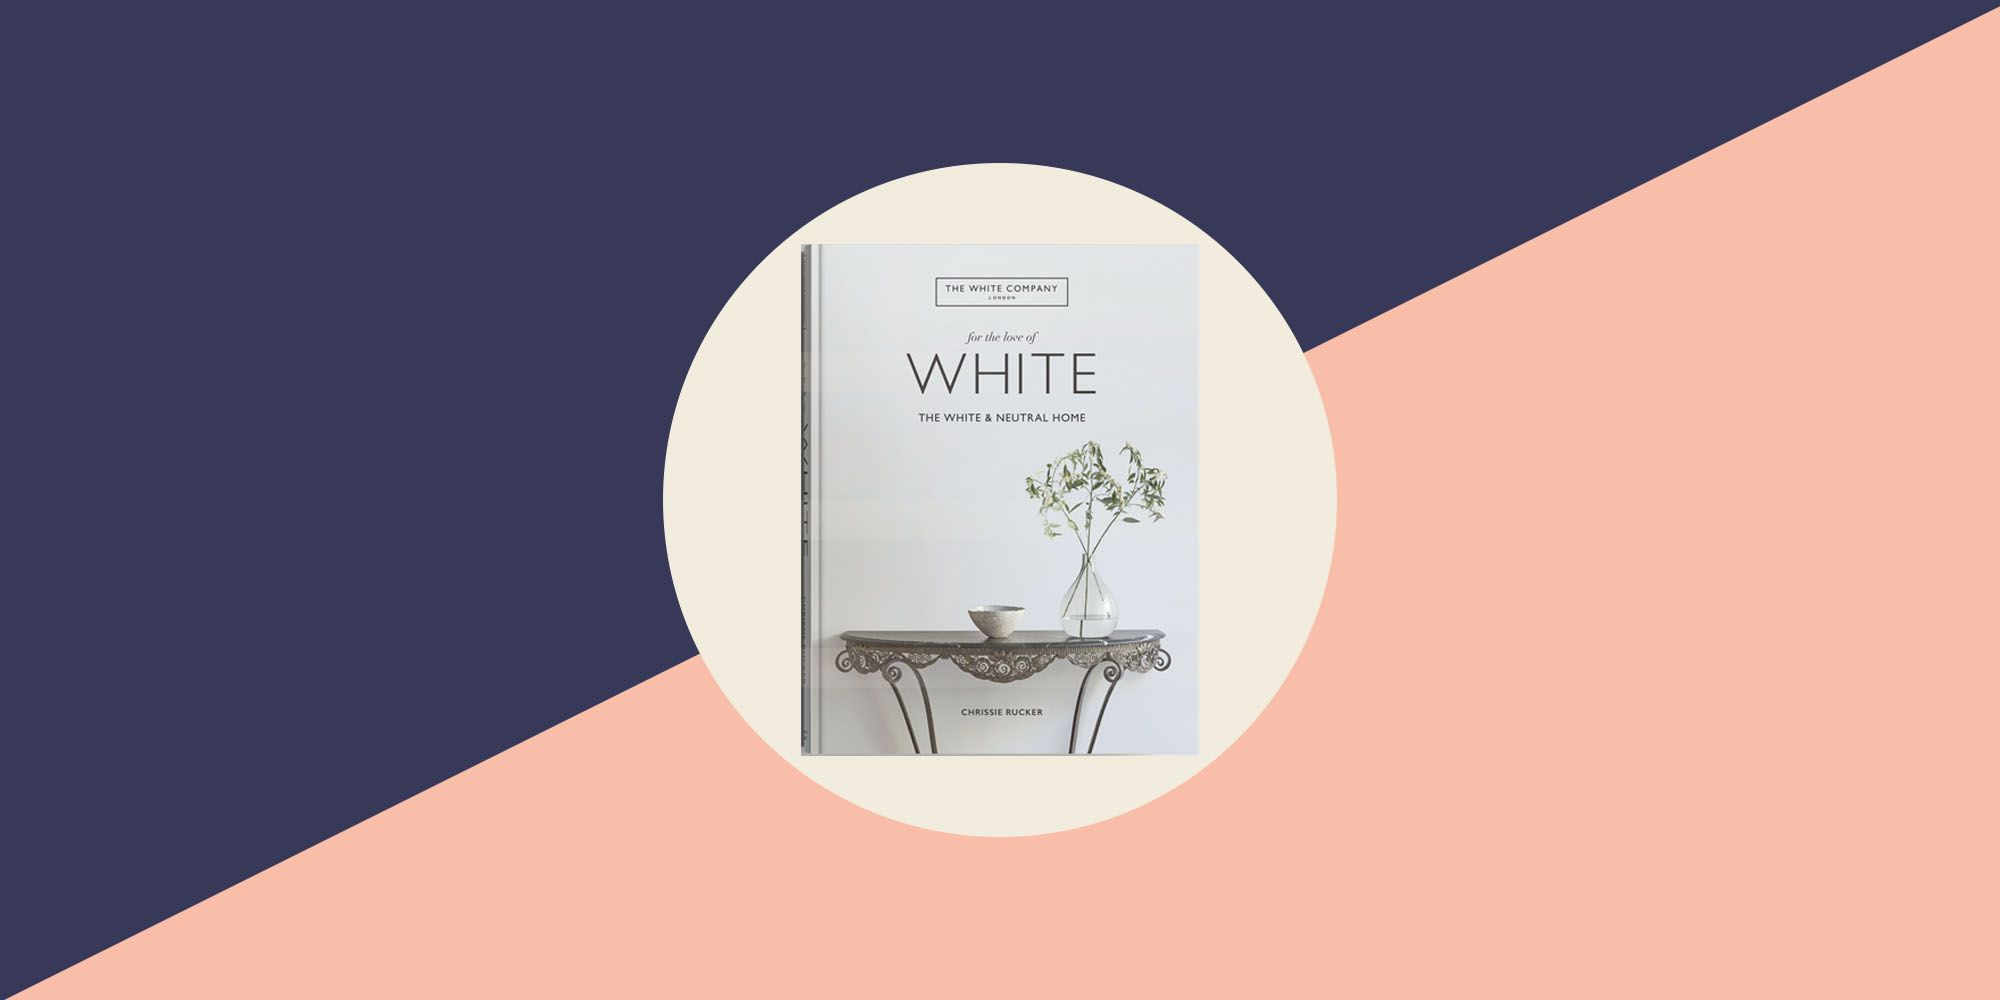 The White Company Releases First Home Decorating Book. For the Love of White: The White & Neutral Home